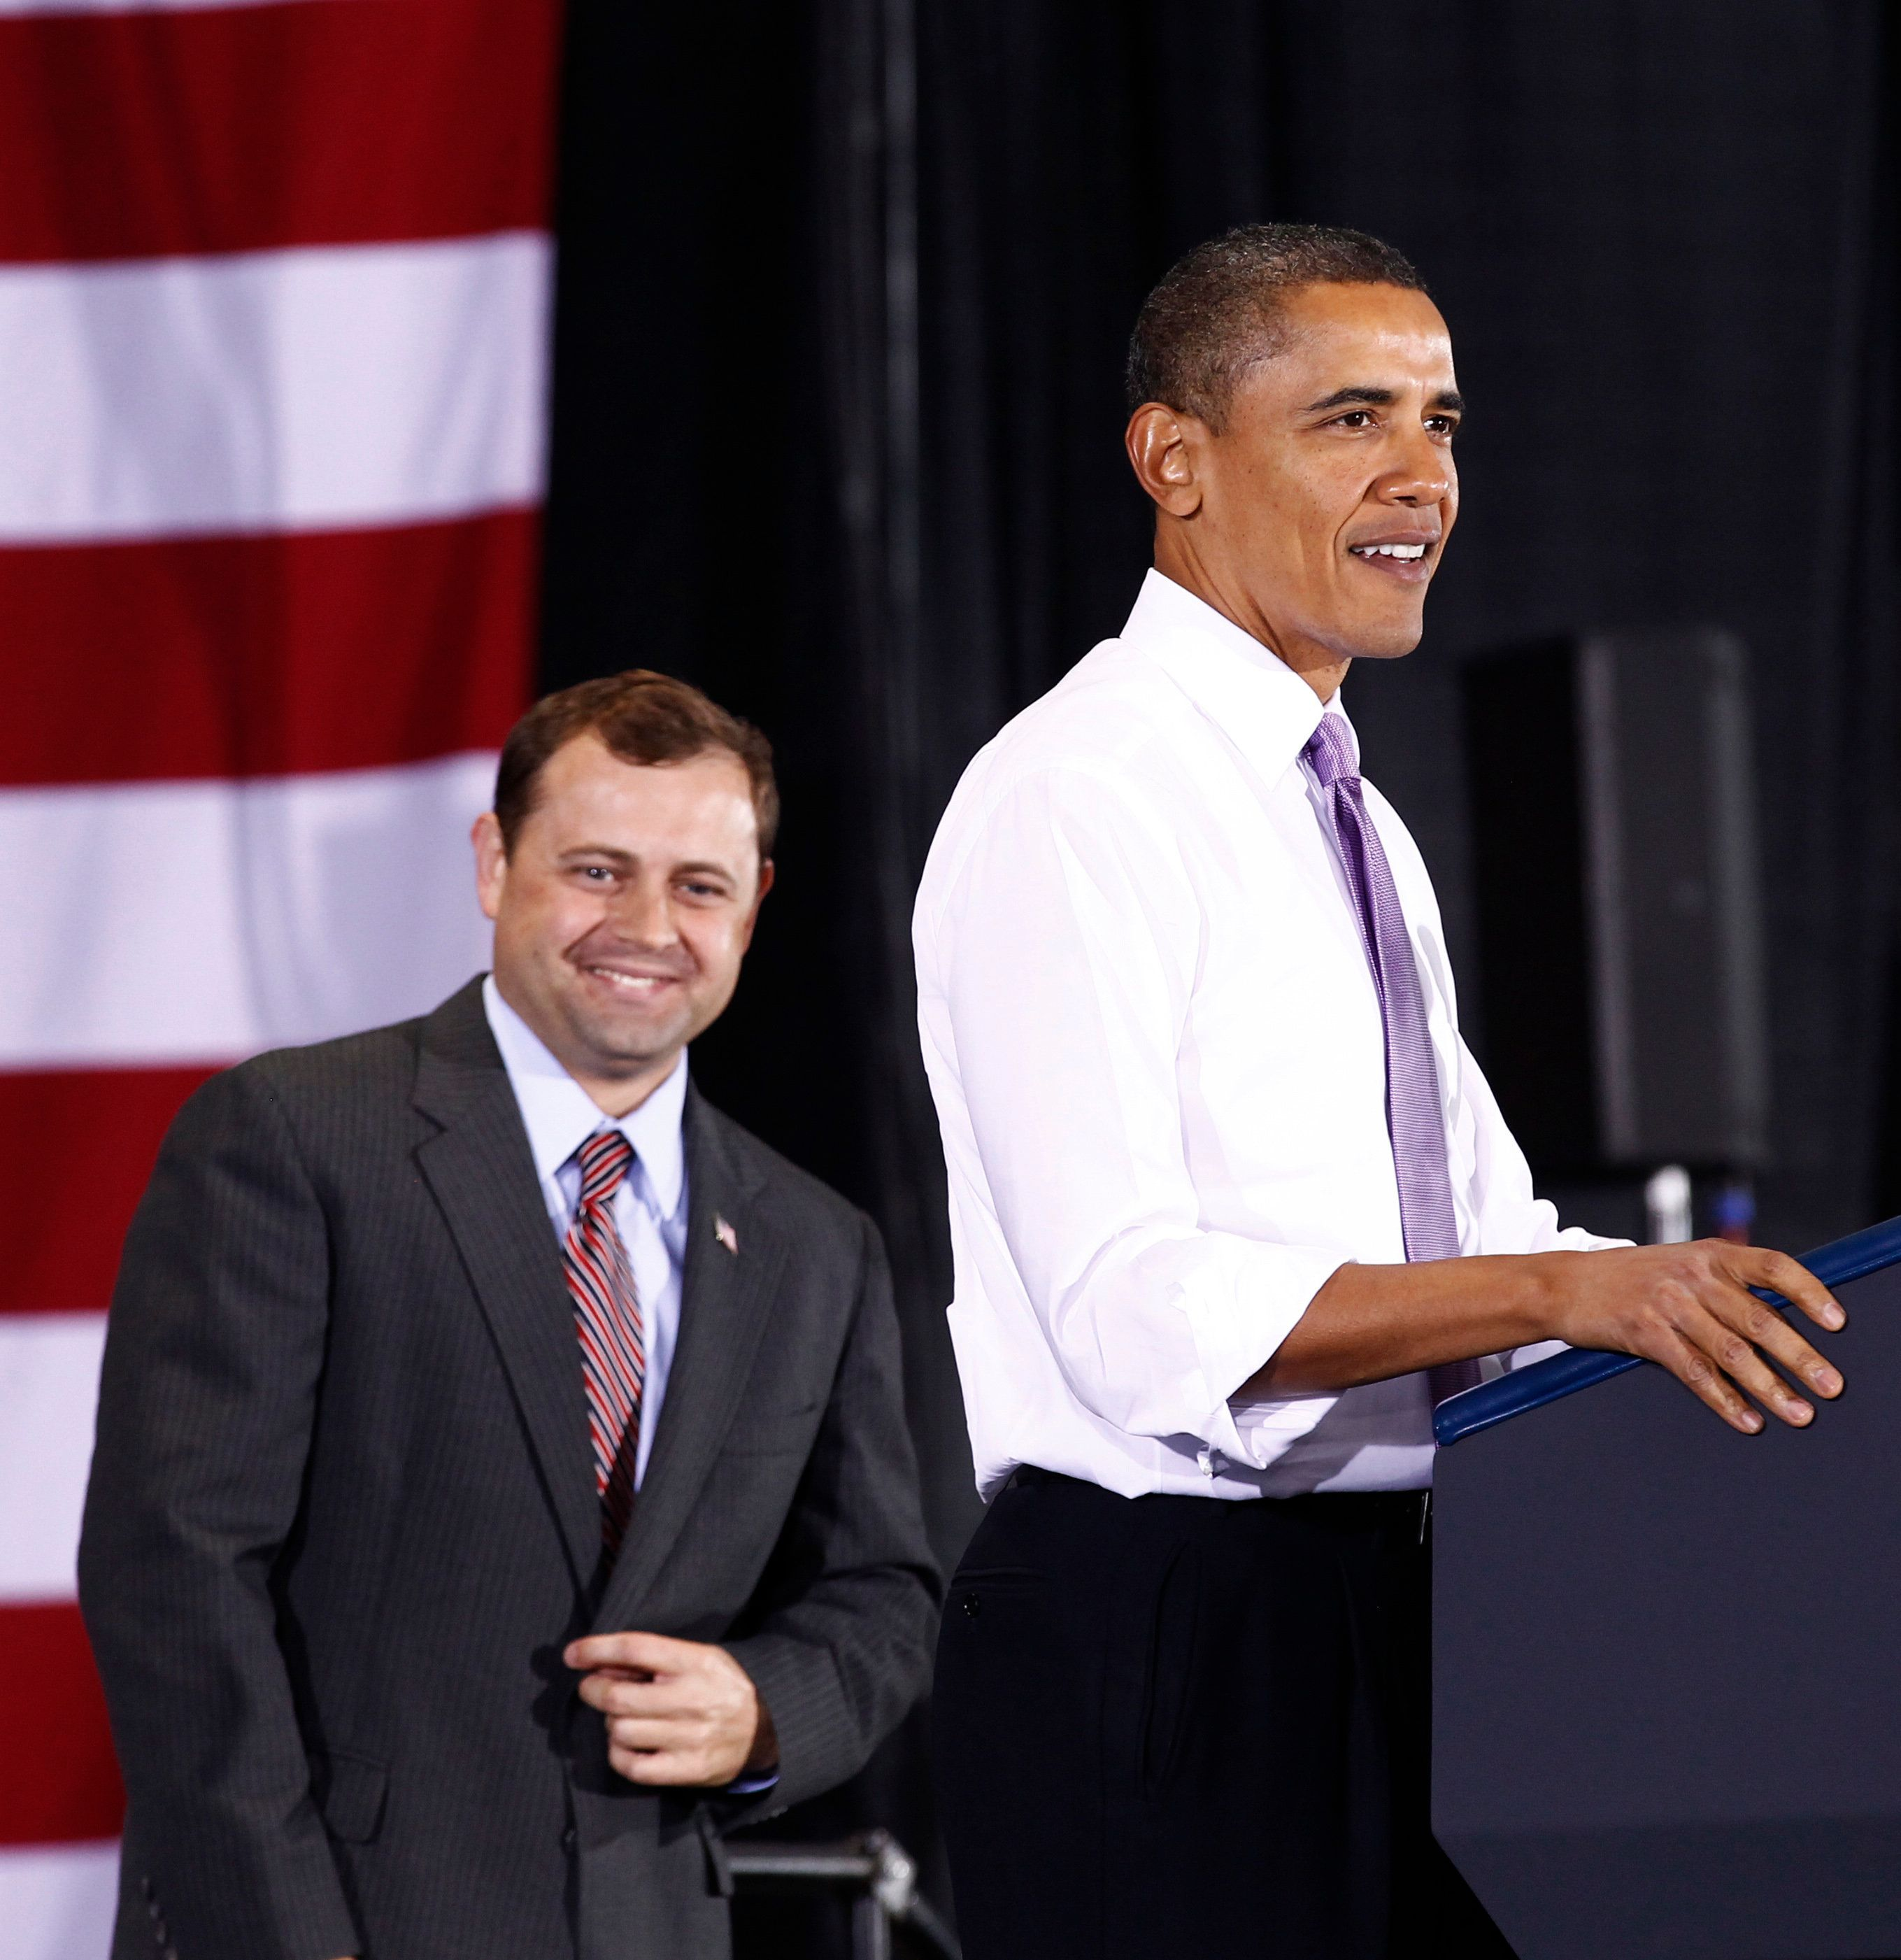 U.S. President Barack Obama speaks at a campaign rally for U.S. Representative Tom Perriello (L) in Charlottesville, Virginia October 29,  2010.   REUTERS/Kevin Lamarque (UNITED STATES - Tags: POLITICS ELECTIONS)